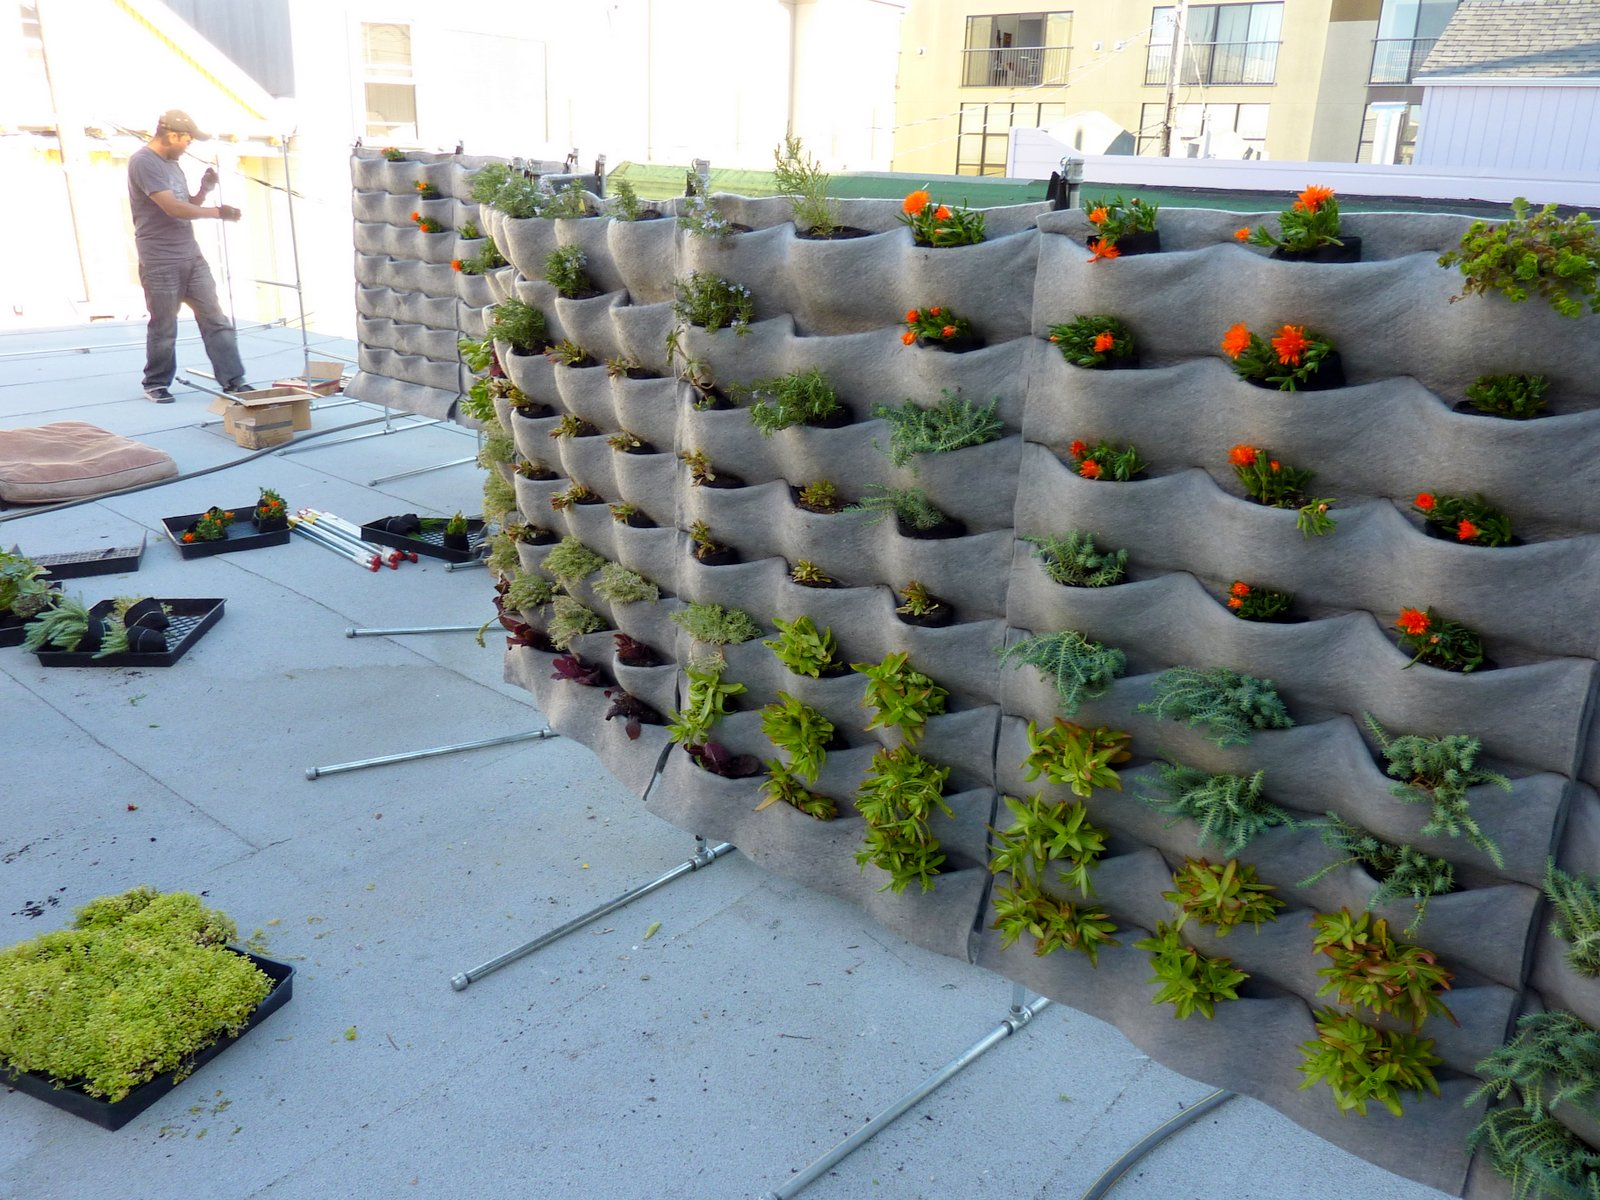 Plants on walls vertical garden systems march 2012 for Vertical garden wall systems